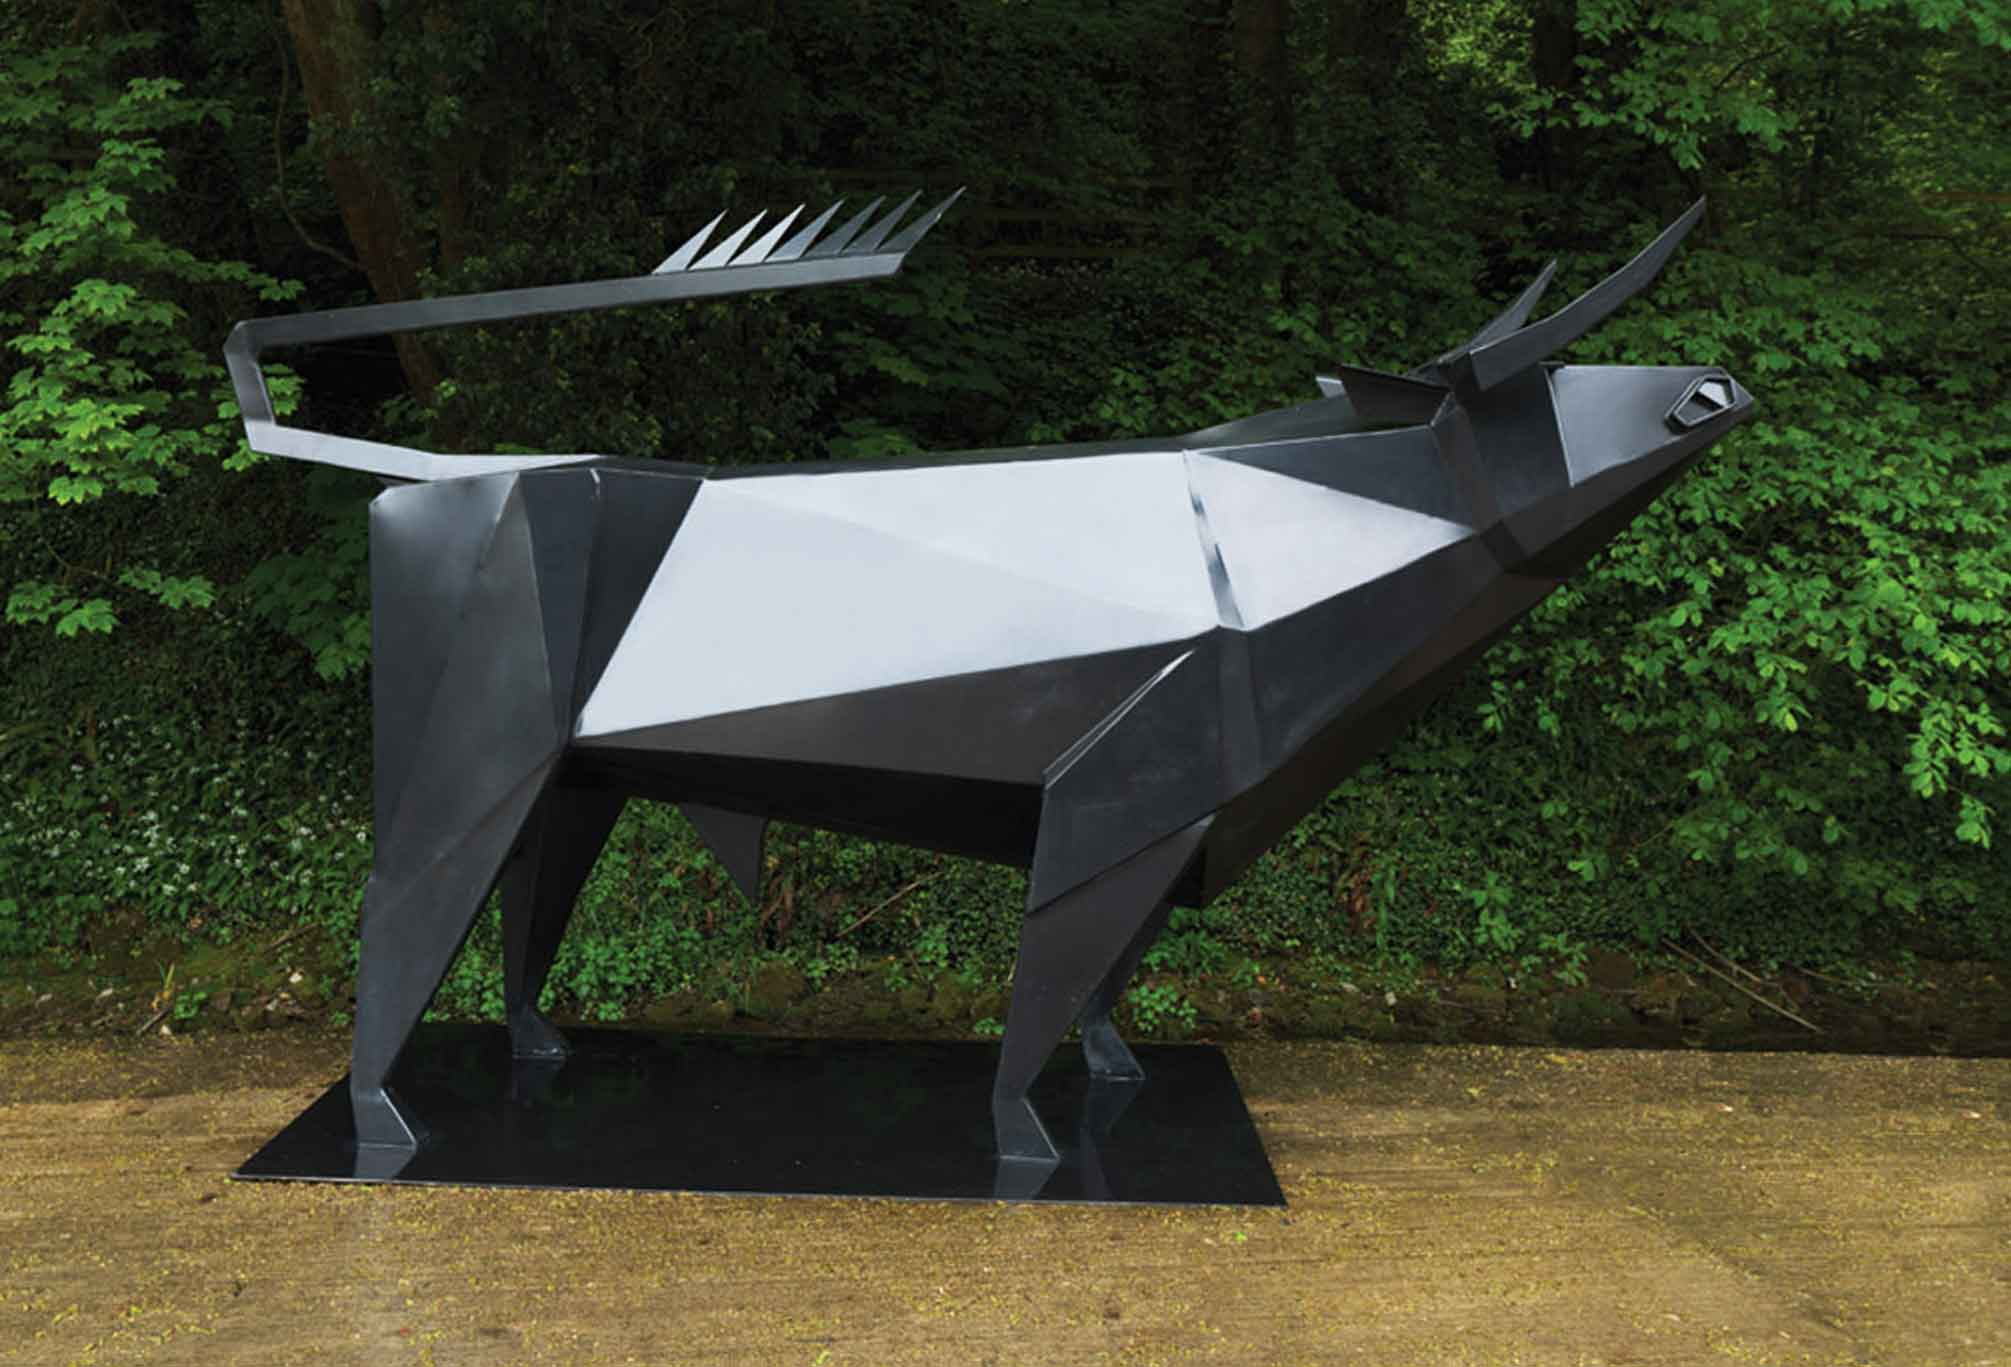 Terence Coventry piece for Withiel Sculpture Garden